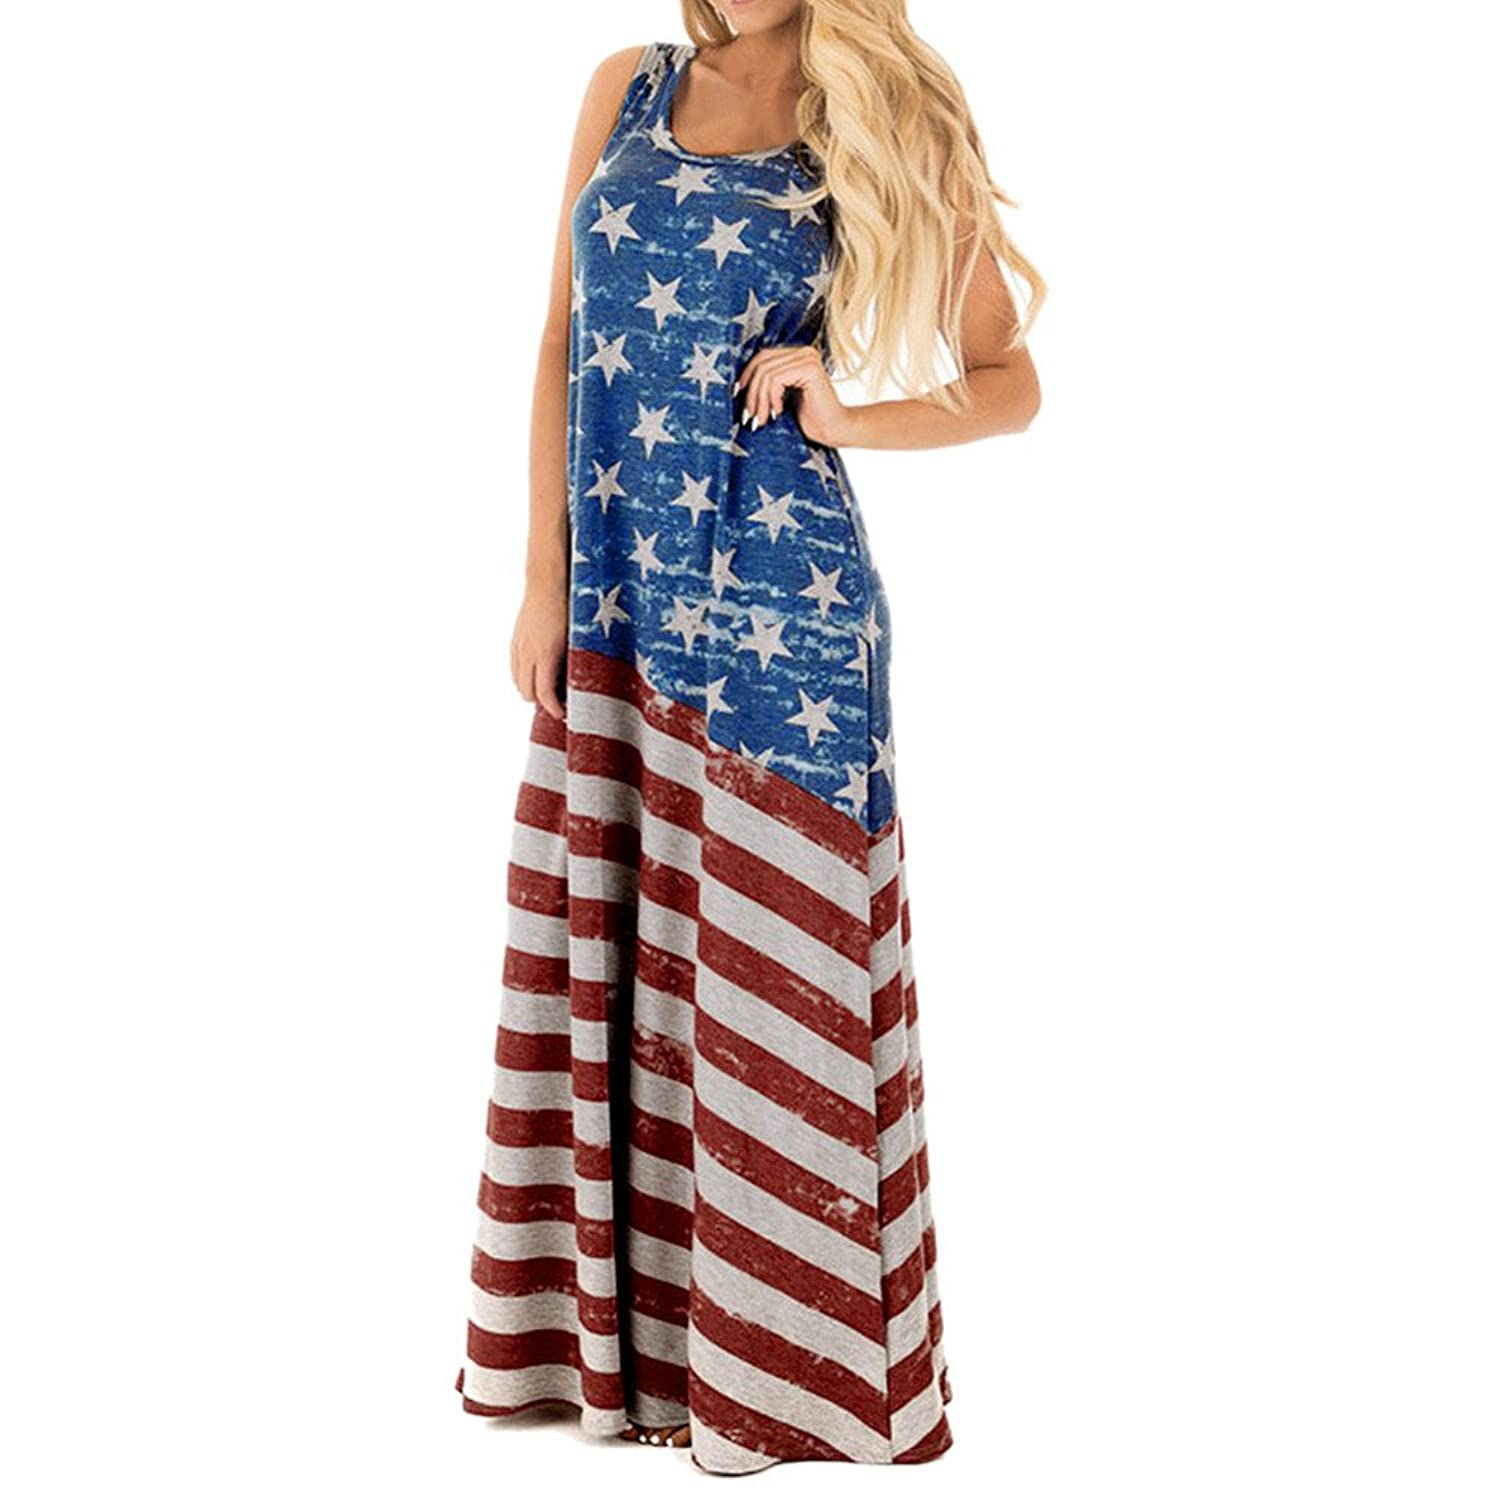 ab47370194111 You'll look gorgeous in this American Flag dress. ???????? The dress  features round neck, sleeveless. It shows off your curves to up your  confidence.